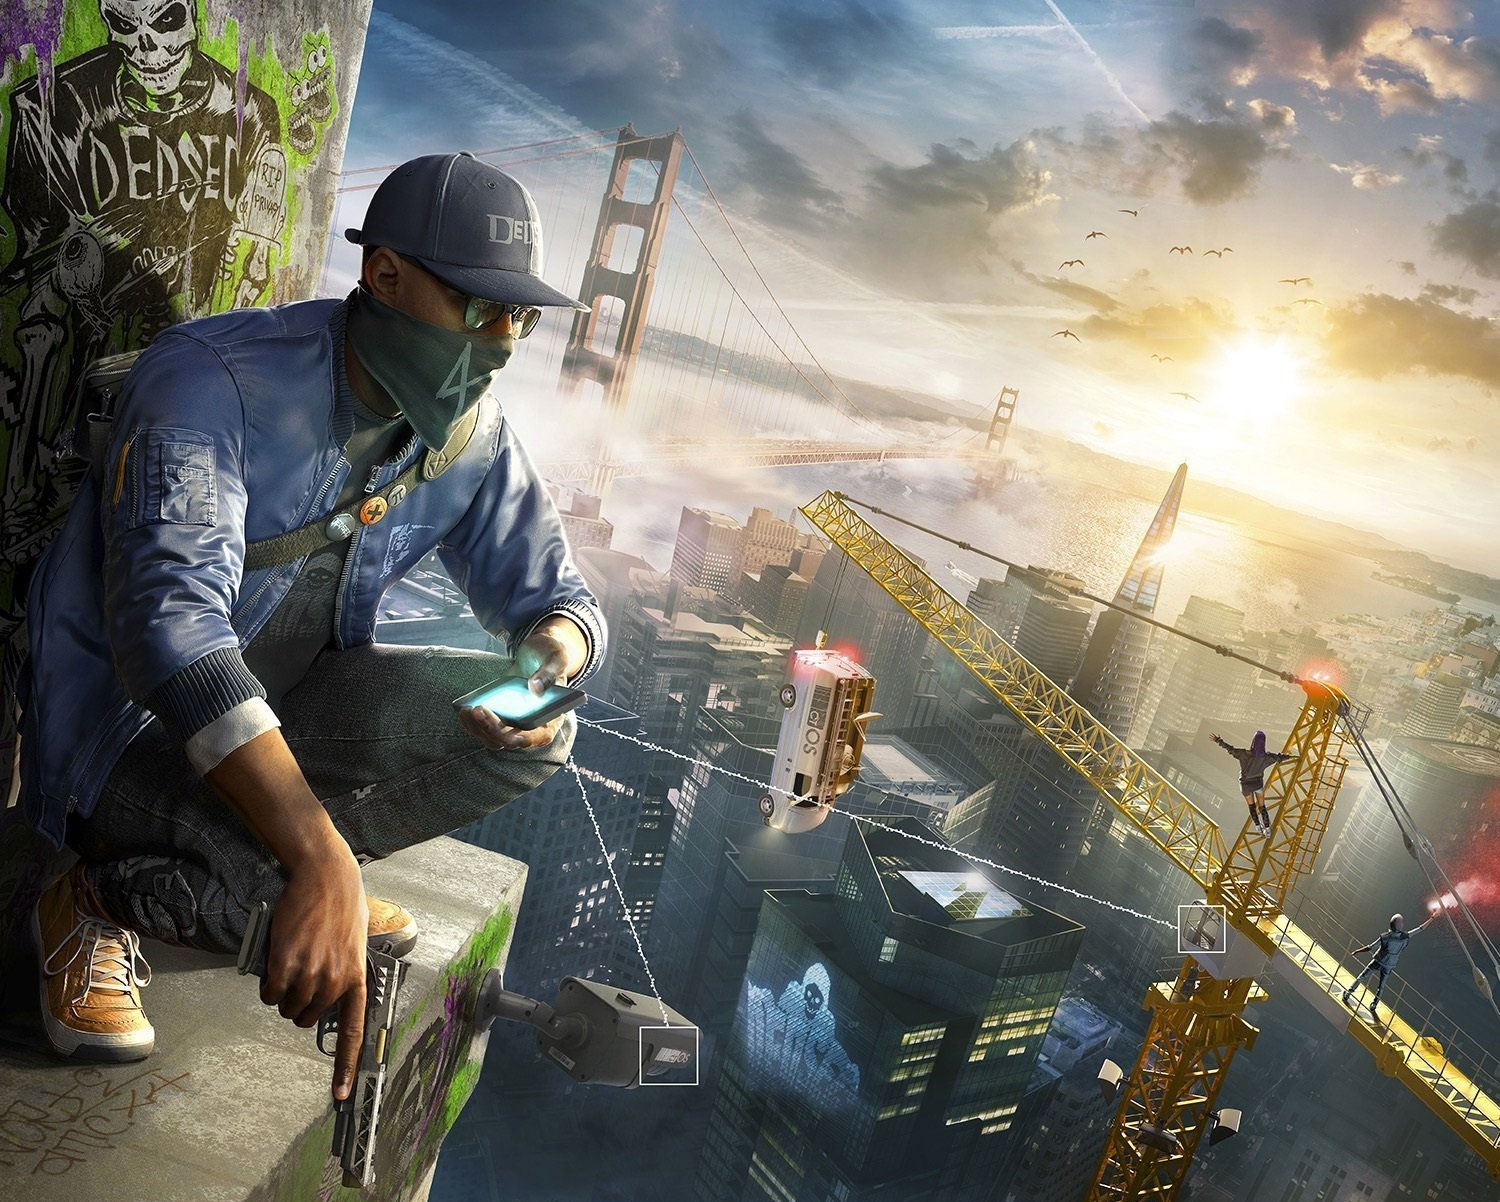 Watch Dogs 2 has a new hacker hero, a new city and a whole lot more